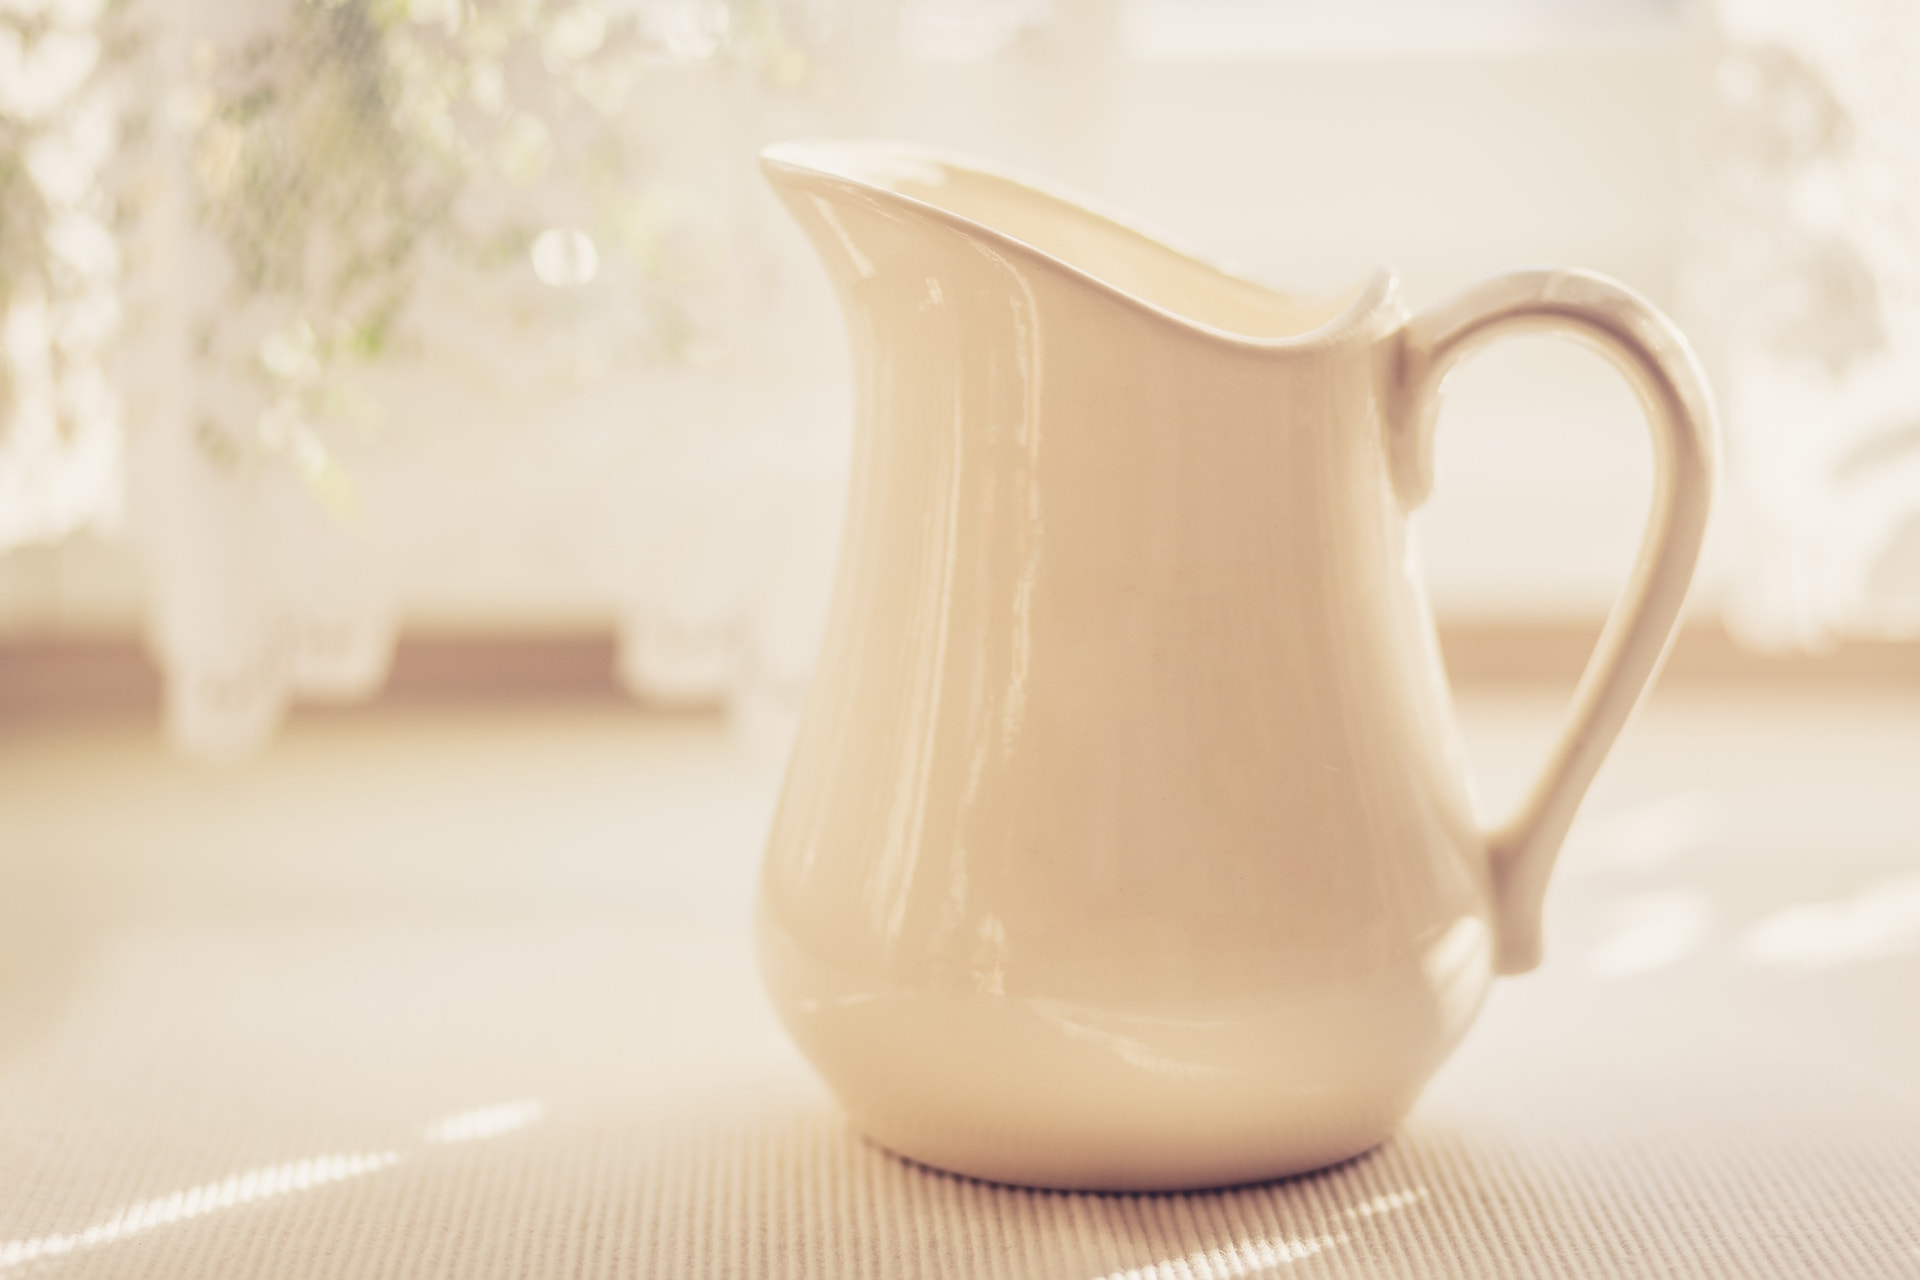 Milk Jug in Soft Light - Warm Tone